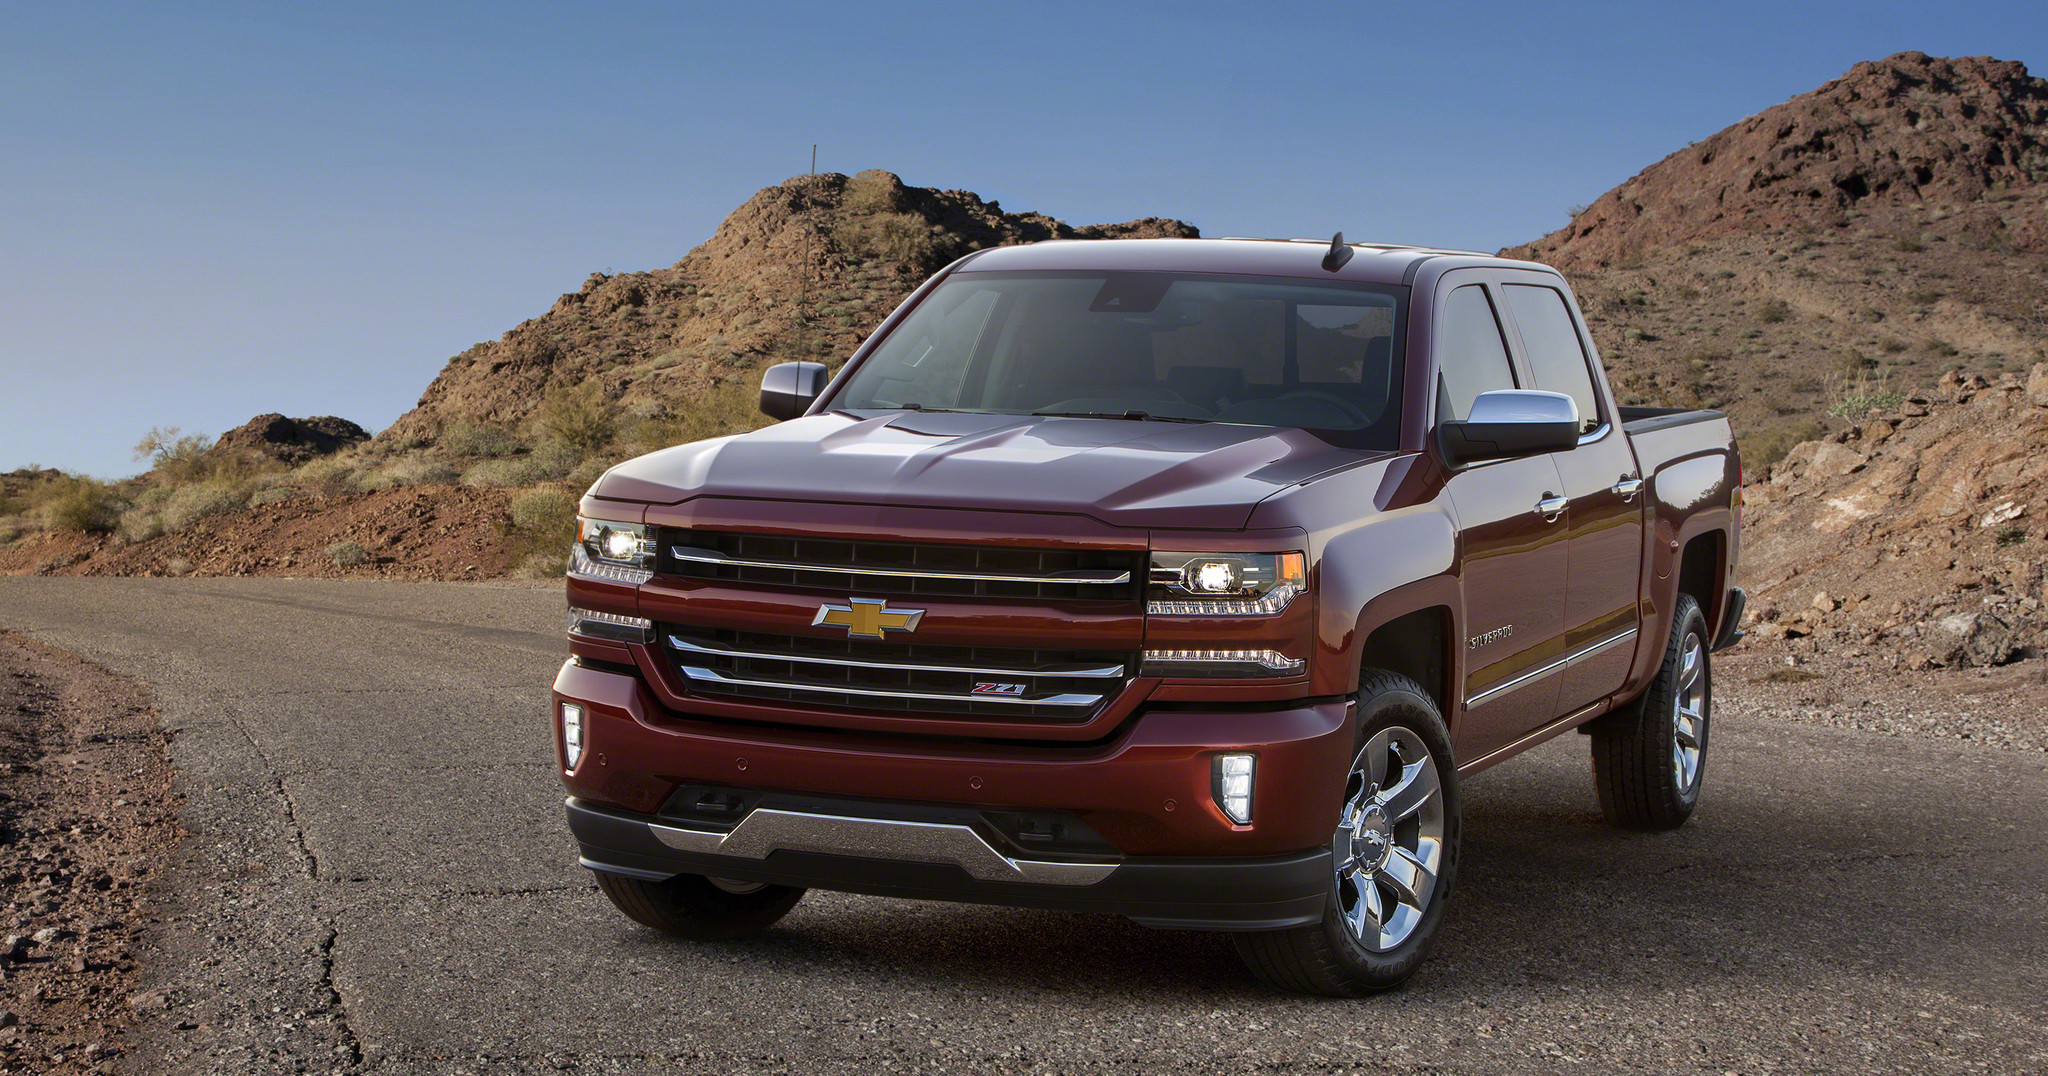 Chevy unveils refreshed Silverado for 2016 - LA Times